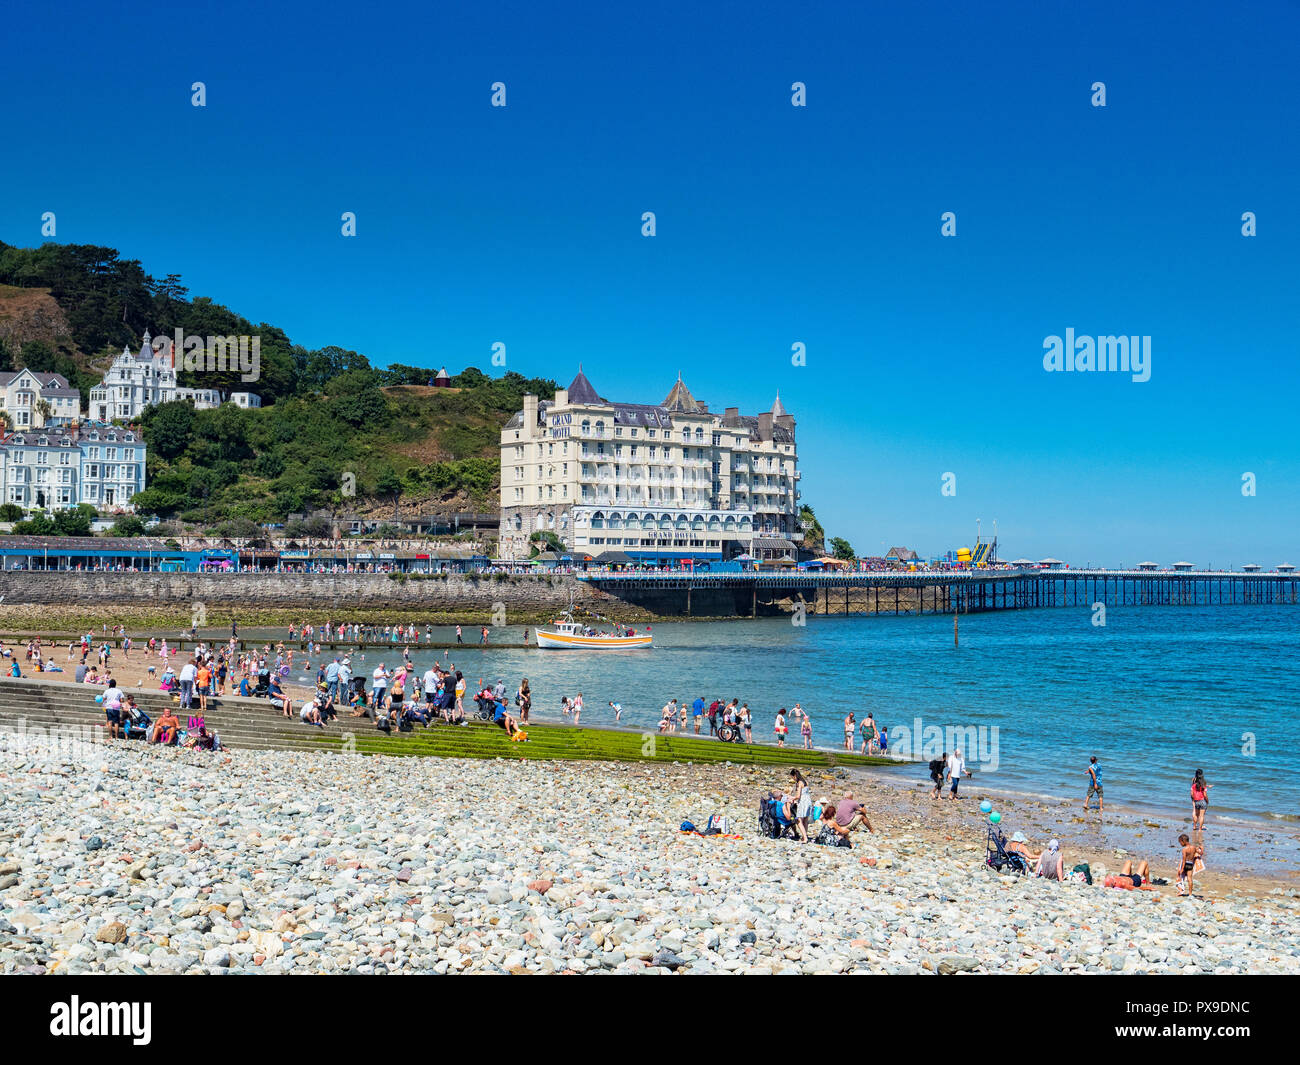 26 July 2018: Llandudno, Conwy, UK - Llandudno beach on a hot summer day, and the Grand Hotel. In the foreground is the pebble sea defence. - Stock Image